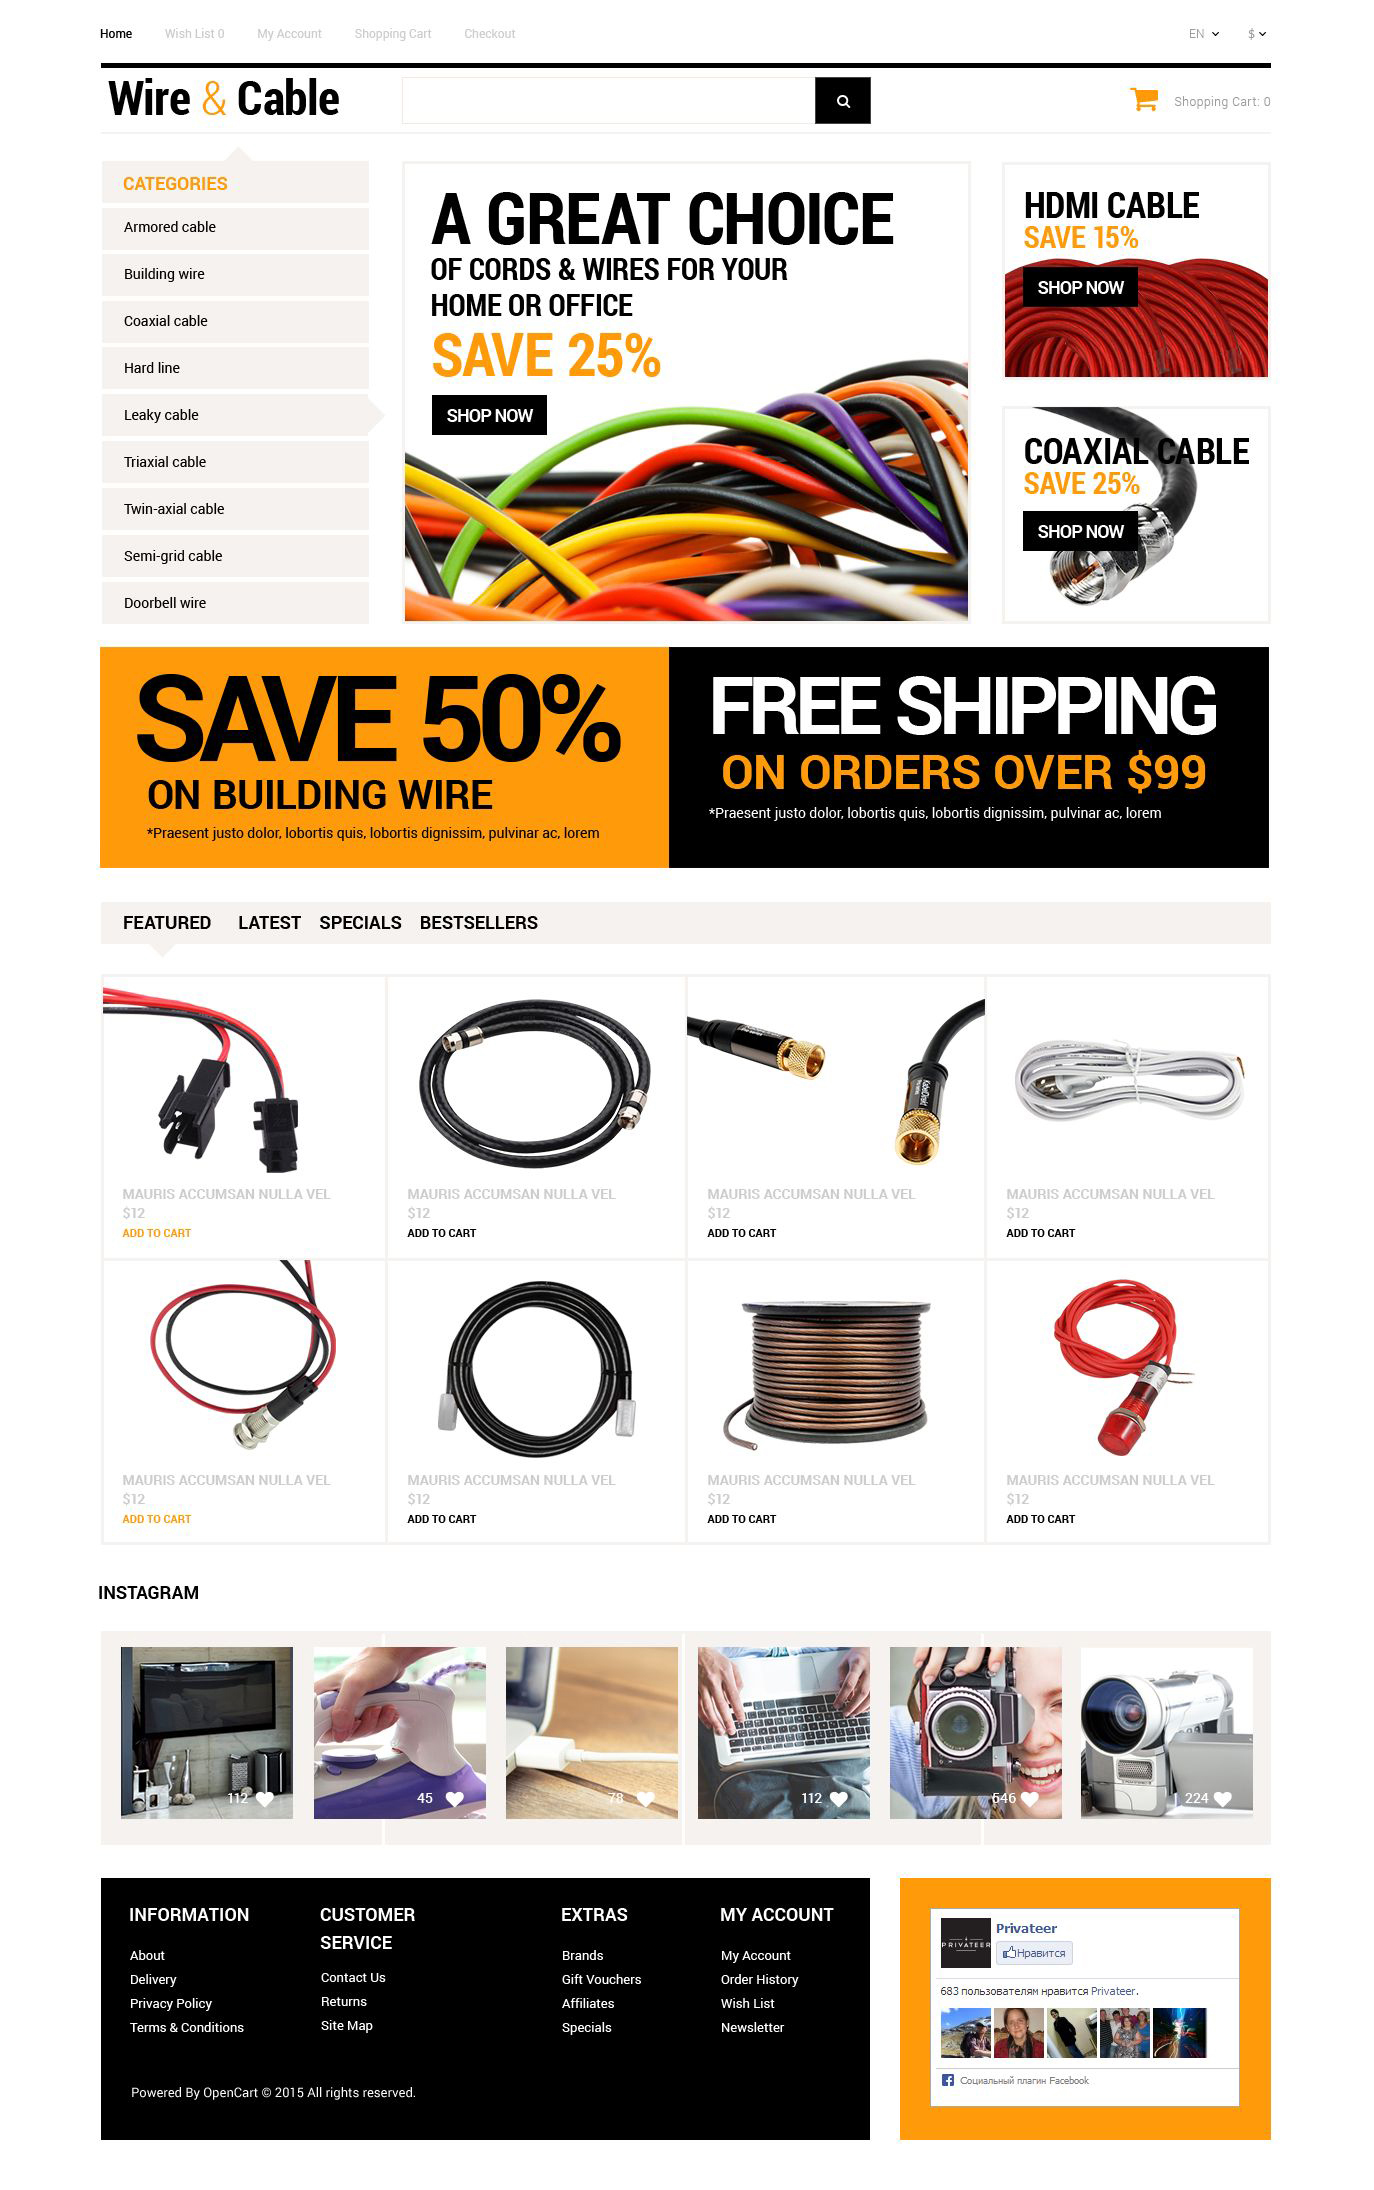 The Wire & Cable OpenCart Design 53404, one of the best OpenCart templates of its kind (electronics, most popular), also known as wire & cable OpenCart template, Cables hdmi OpenCart template, cable OpenCart template, audio OpenCart template, optical OpenCart template, toslink OpenCart template, fiber OpenCart template, etchernet OpenCart template, thunderbolt OpenCart template, firewire OpenCart template, hard OpenCart template, drive OpenCart template, serial OpenCart template, ata OpenCart template, sata OpenCart template, speaker OpenCart template, products OpenCart template, prices OpenCart template, price OpenCart template, list and related with wire & cable, Cables hdmi, cable, audio, optical, toslink, fiber, etchernet, thunderbolt, firewire, hard, drive, serial, ata, sata, speaker, products, prices, price, list, etc.